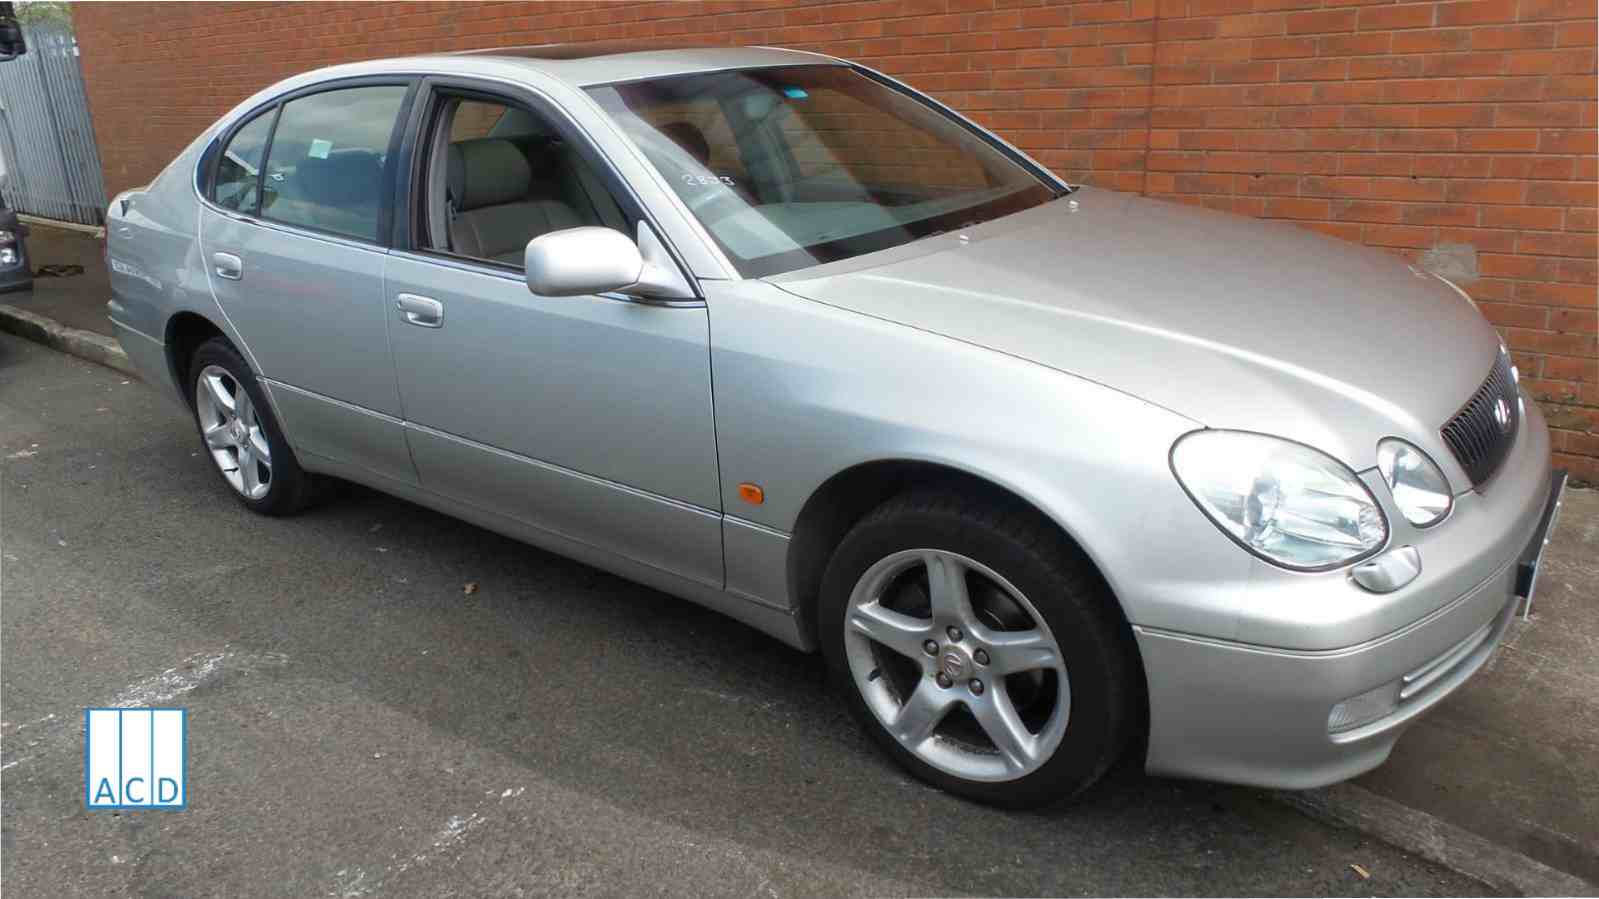 Lexus GS300 SE 3.0L Petrol 5-Speed Automatic 2001 #2833 01